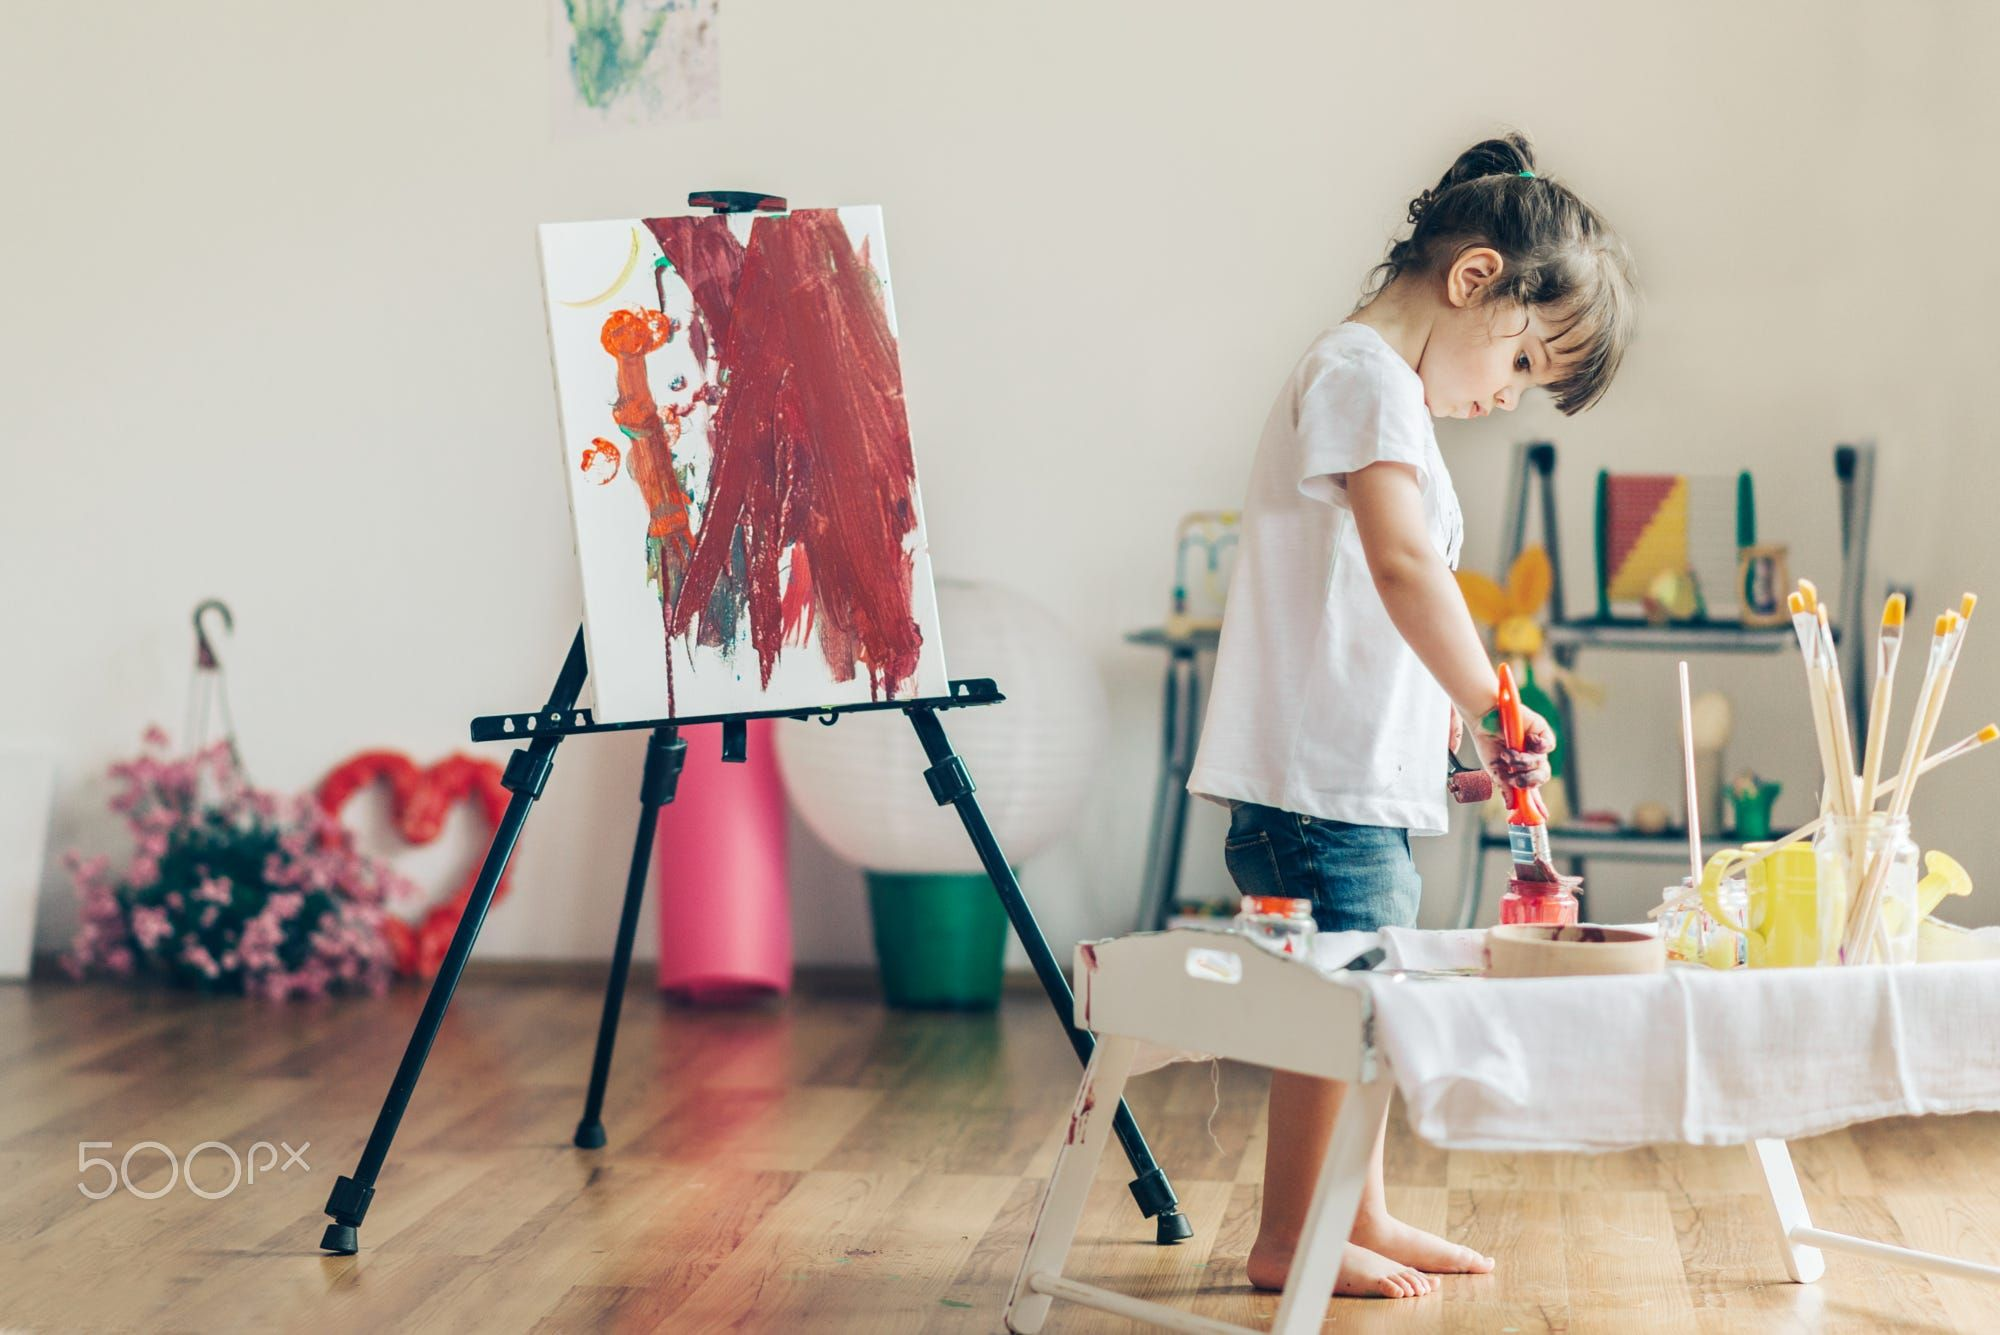 Cut girl painting in at her  home, feel free to see my similar photos.